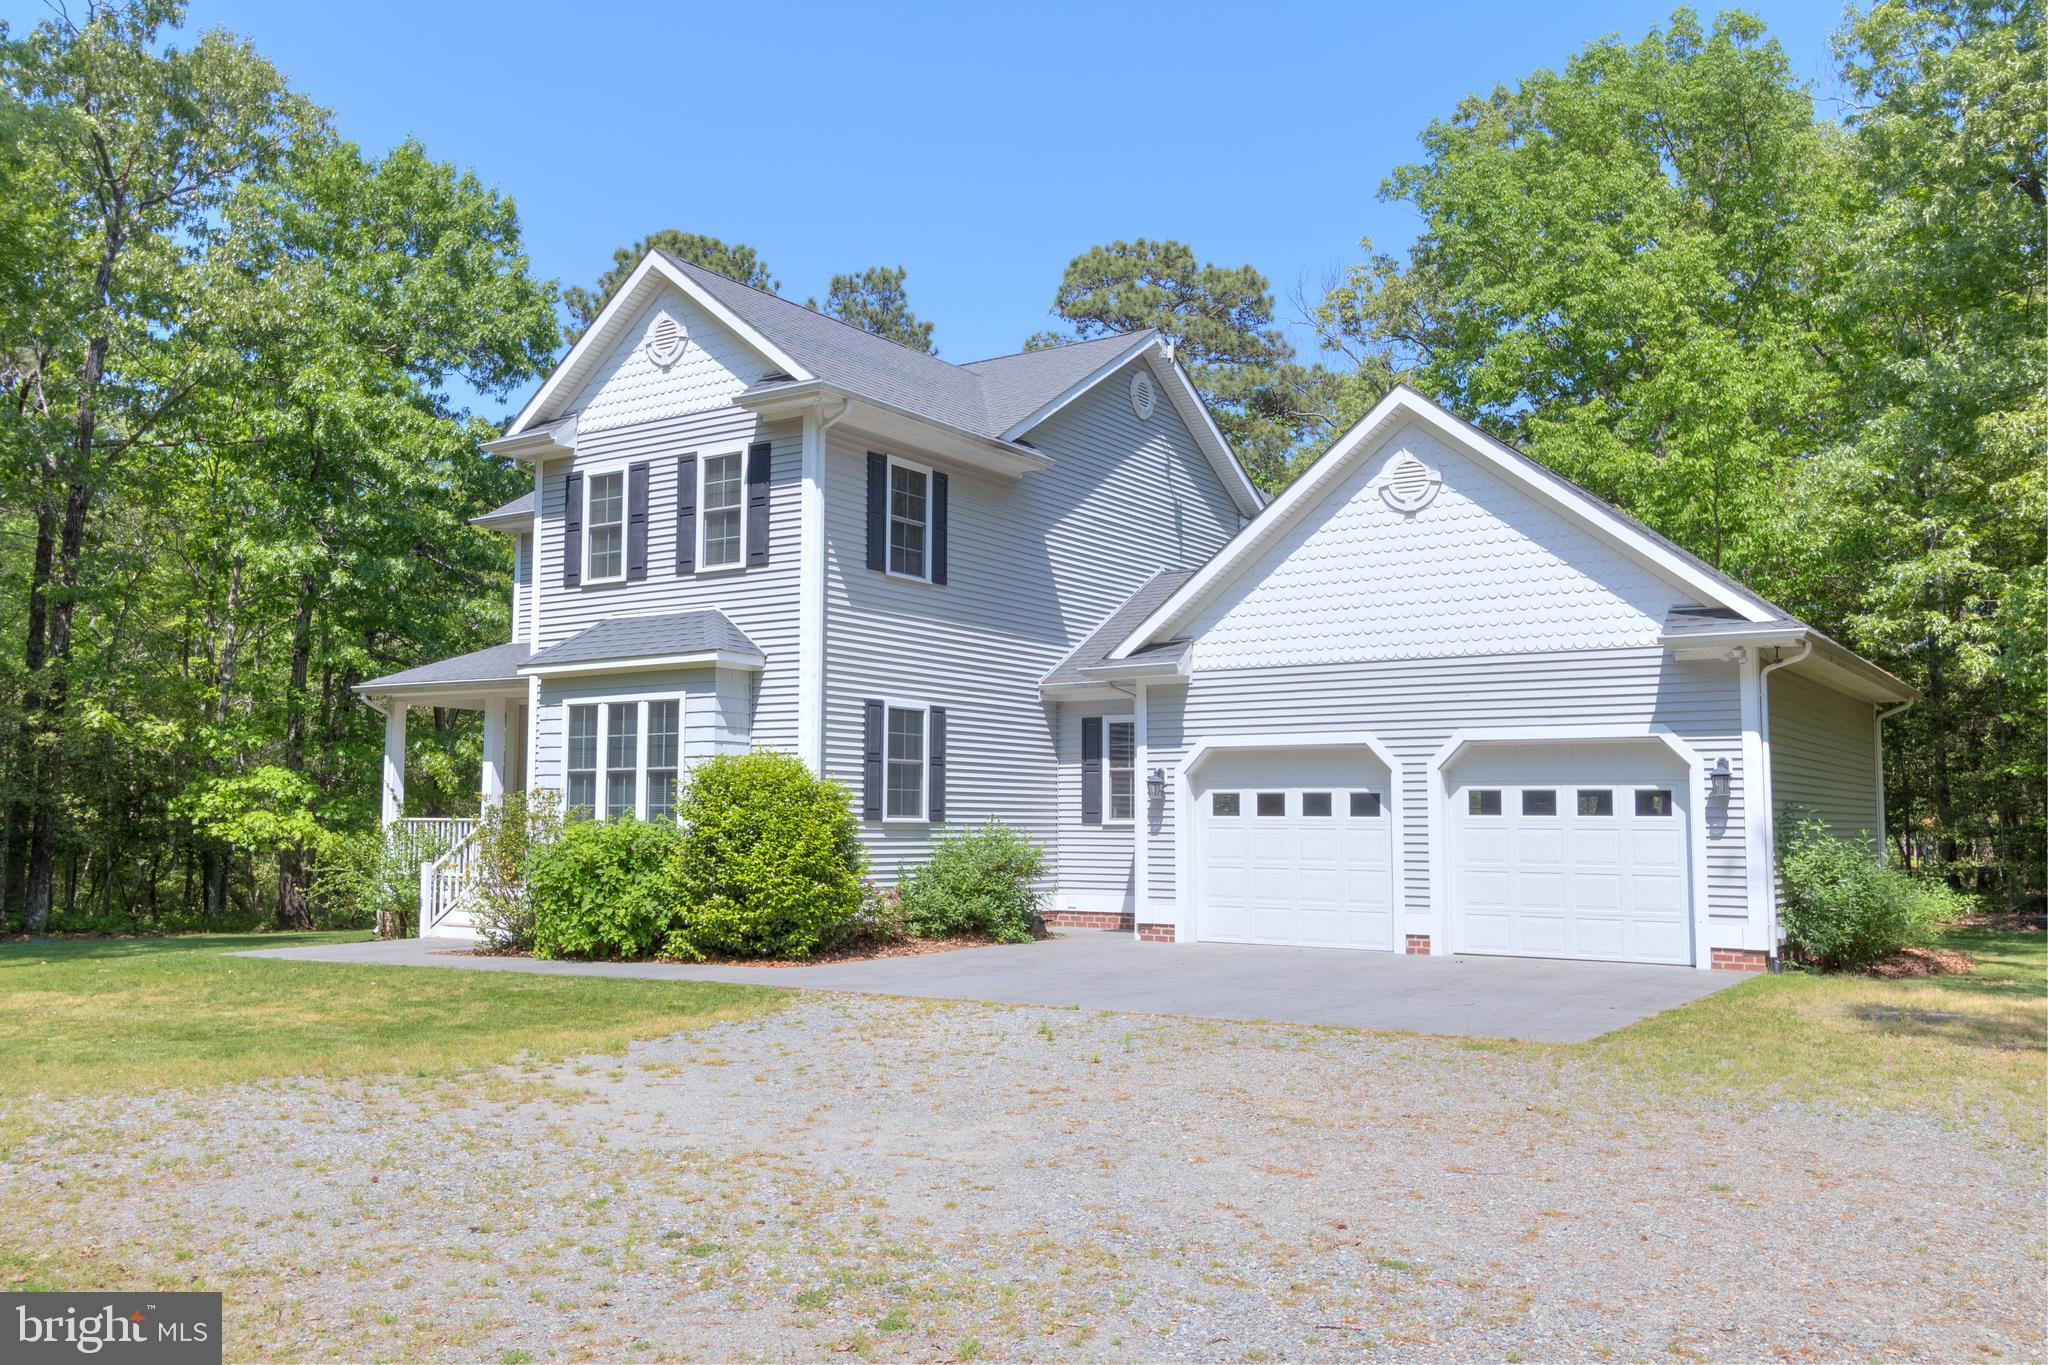 290 BAY POINTE, REEDVILLE, VA 22539